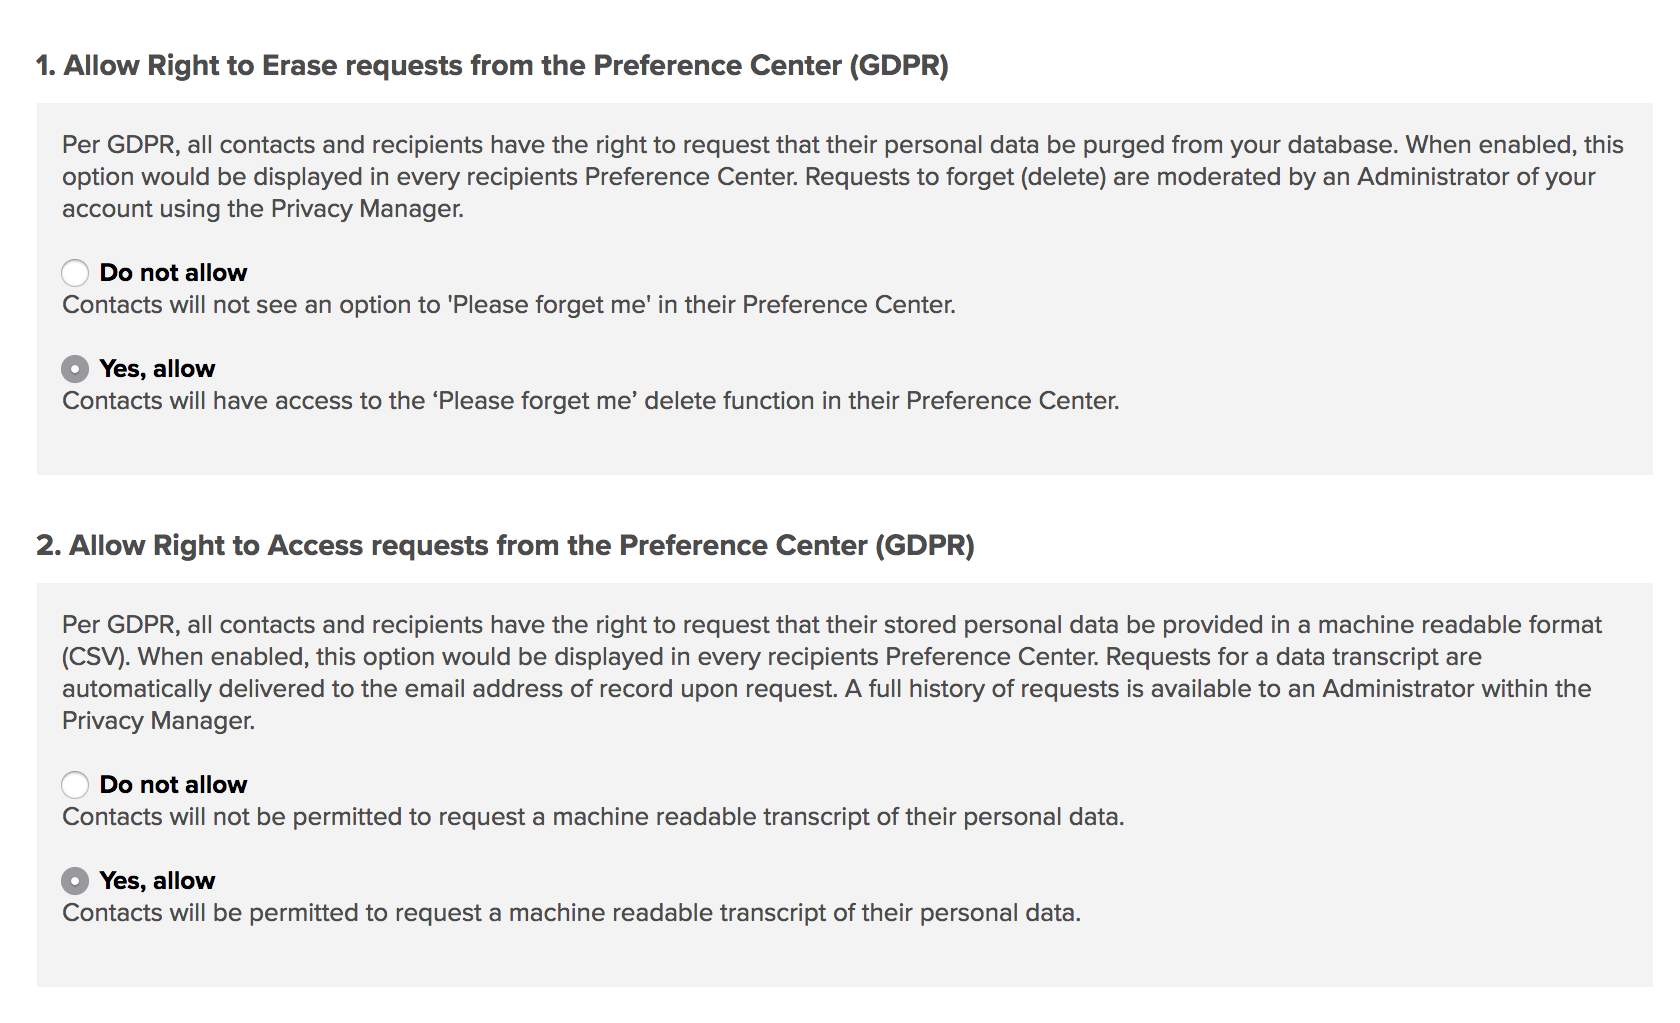 inbox25-privacy-guard-subject-access-right-gdpr.png